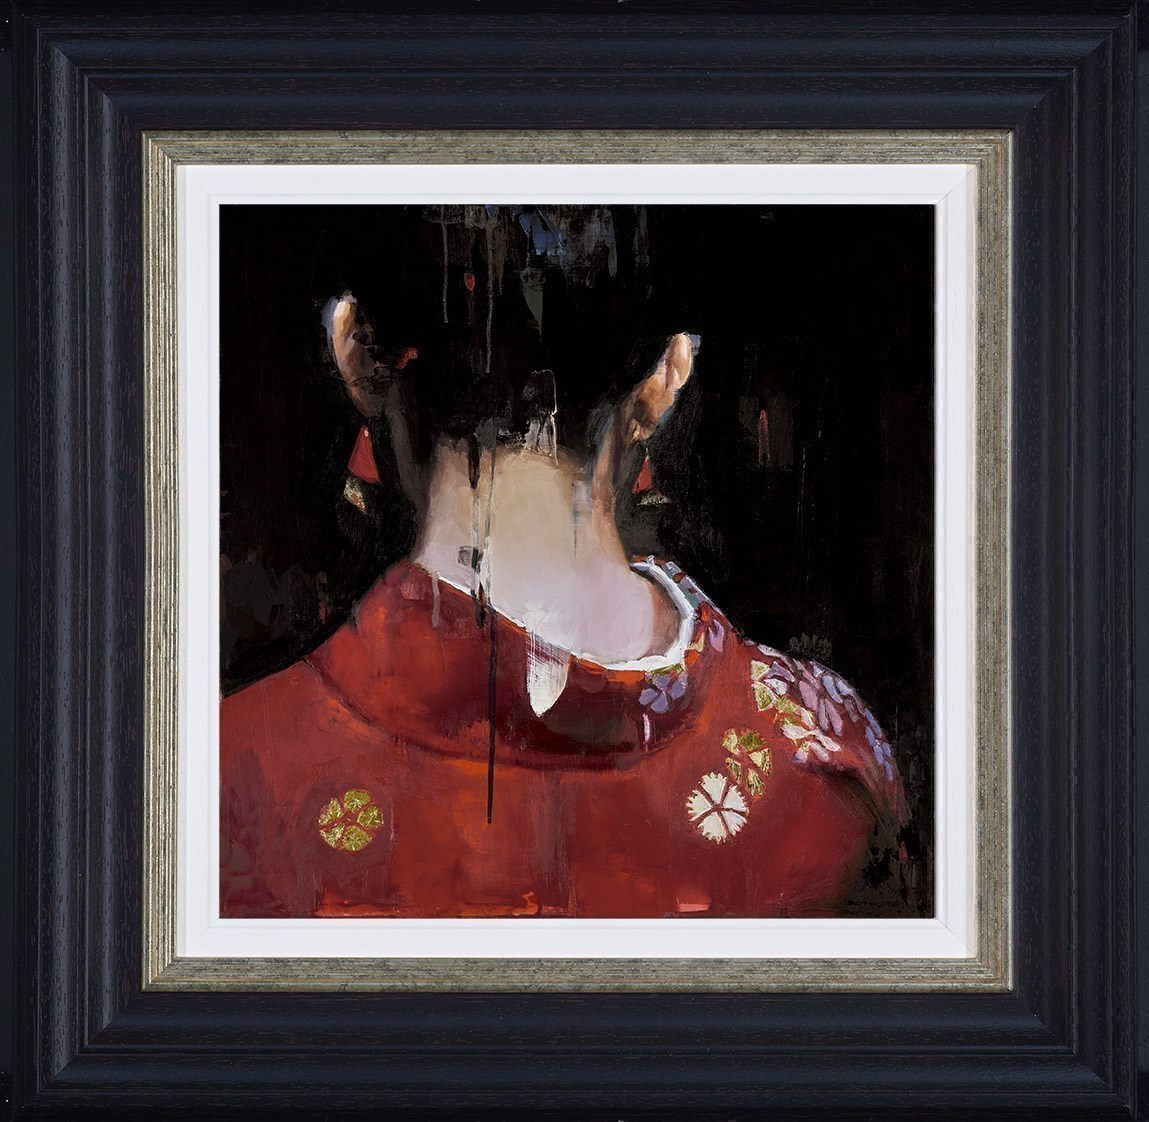 Red Kimono by Christian Hook - Limited Edition on Paper sized 14x14 inches. Available from Whitewall Galleries